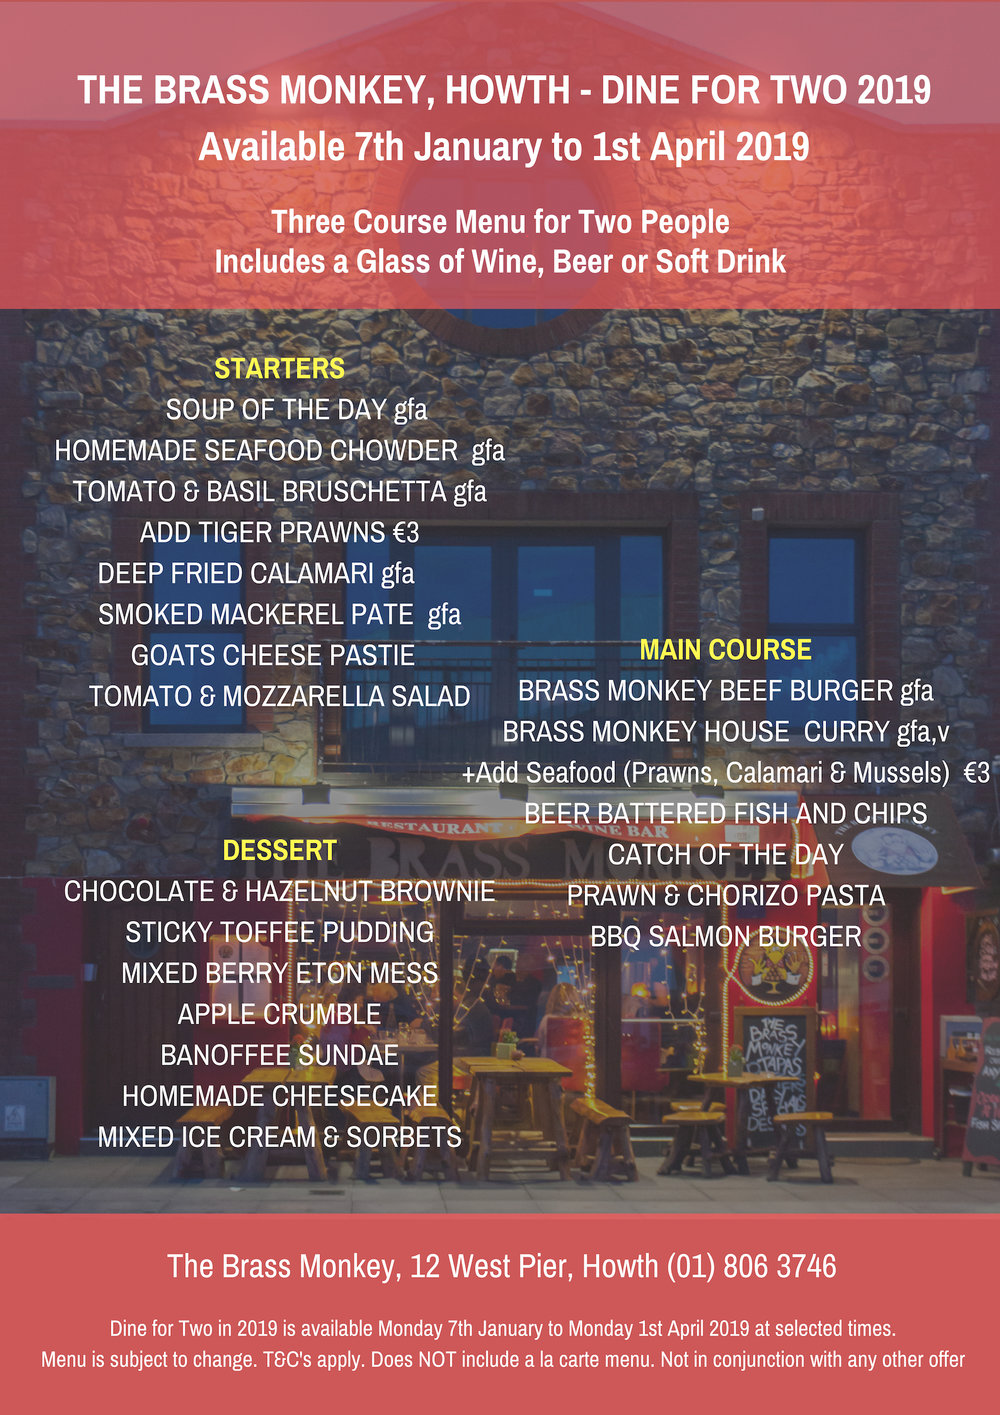 Dine for Two 2019 sample menu at The Brass Monkey restaurant, Howth